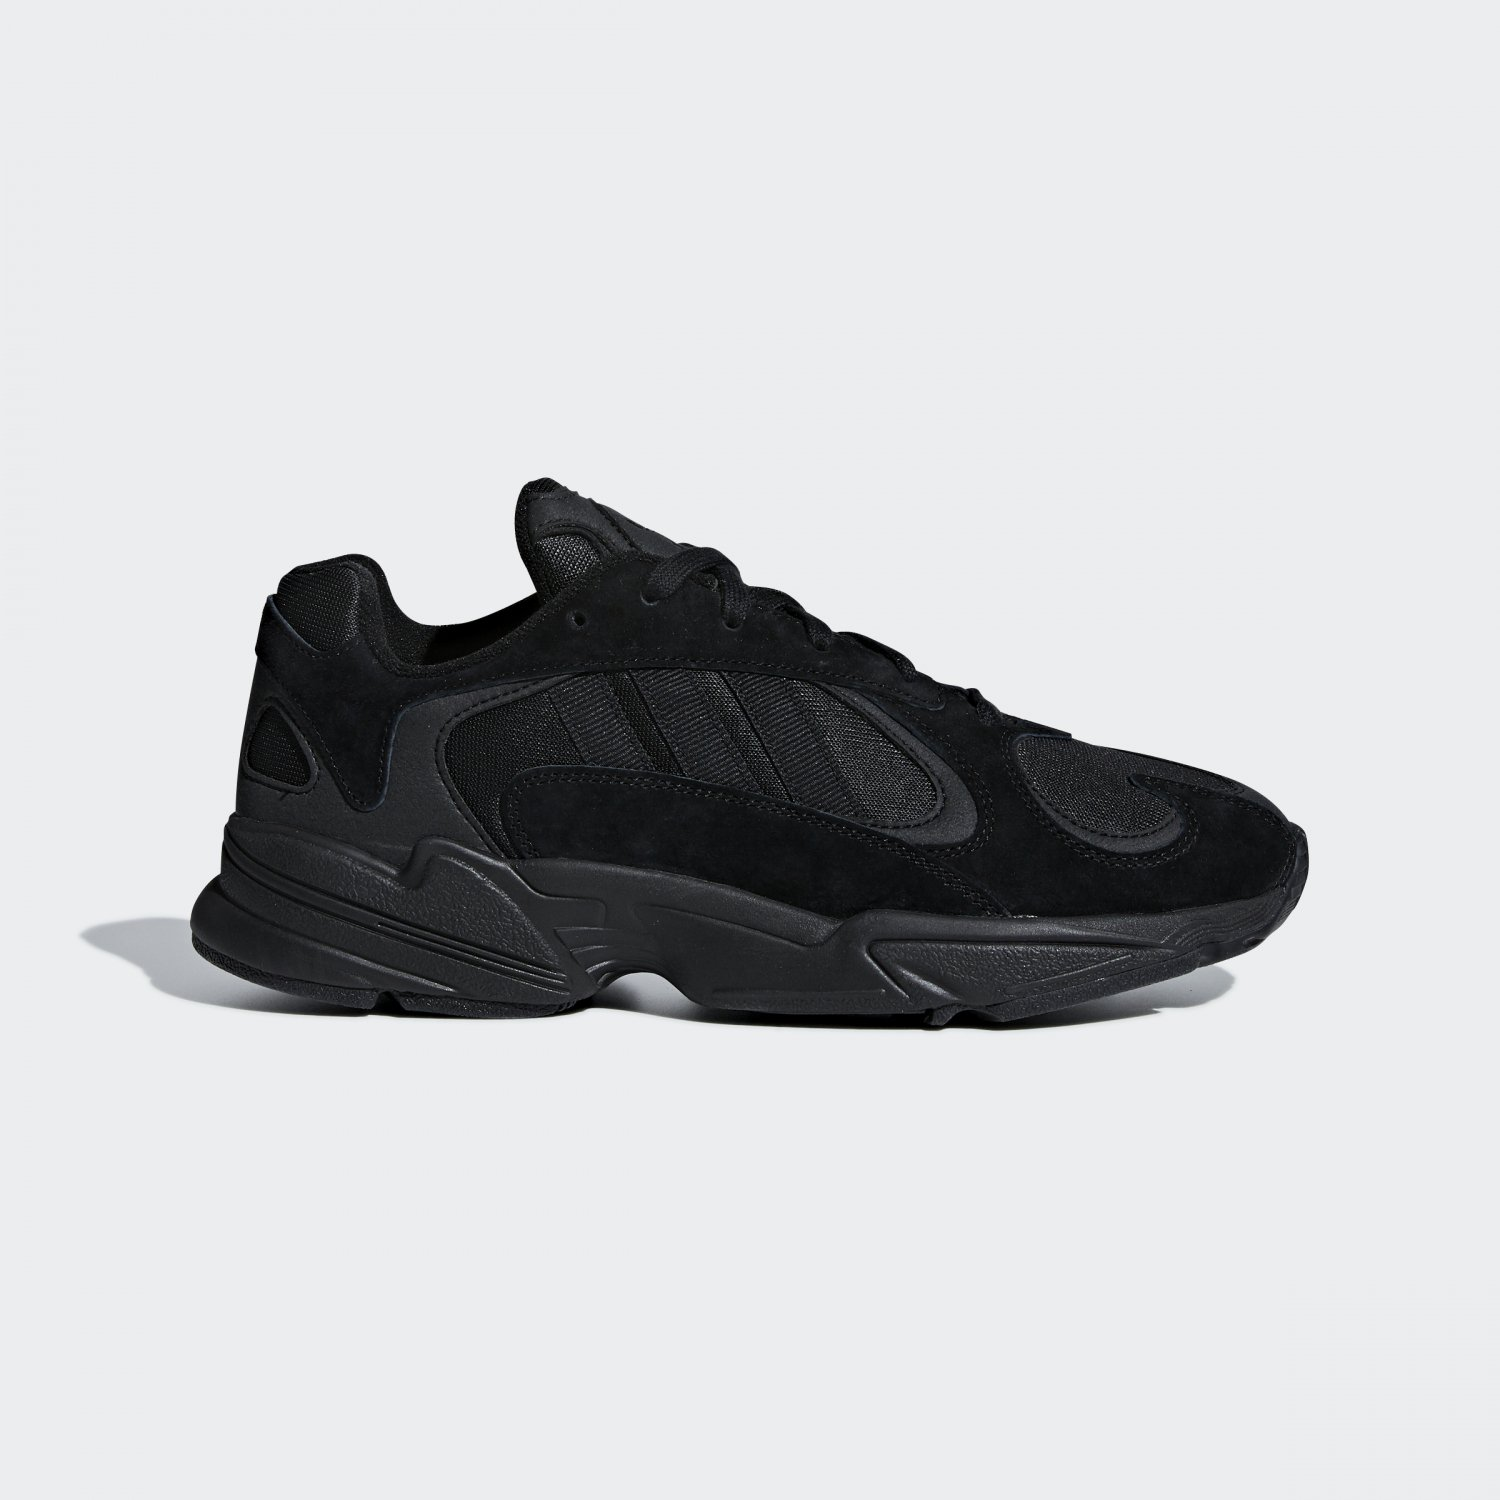 adidas-yung-1-triple-black-g27026-release-20180908